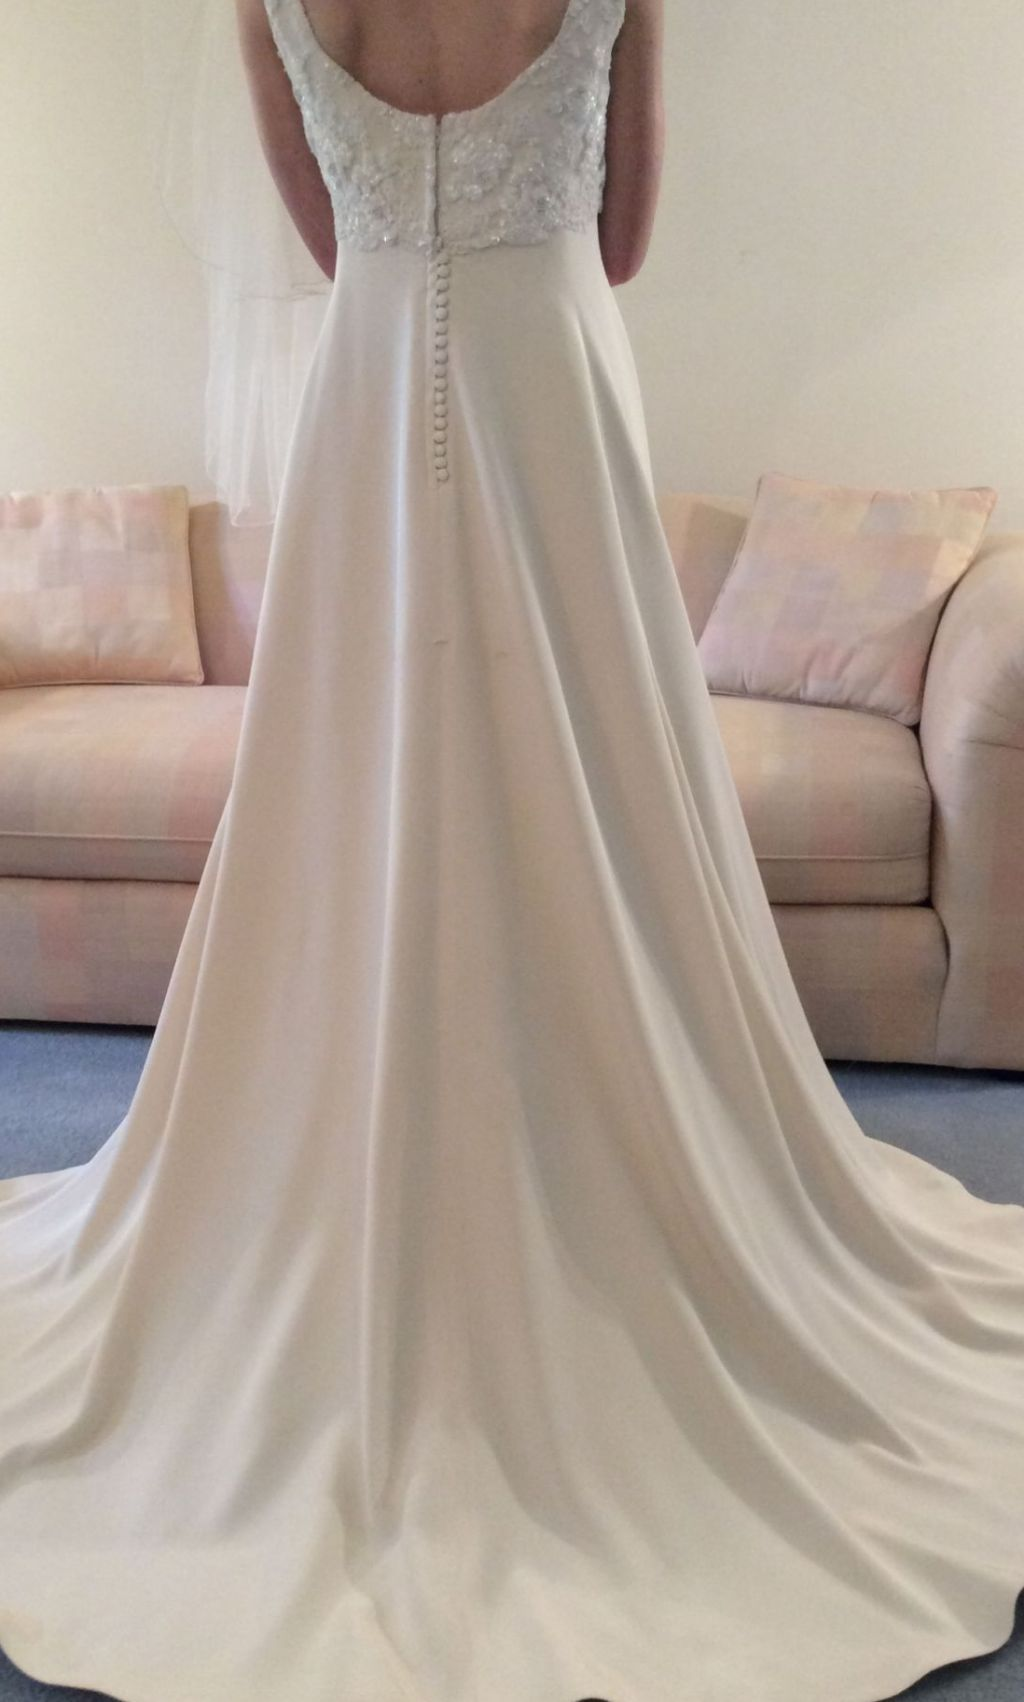 Vera wang 799 size 14 used wedding dresses for Vera wang wedding dresses prices